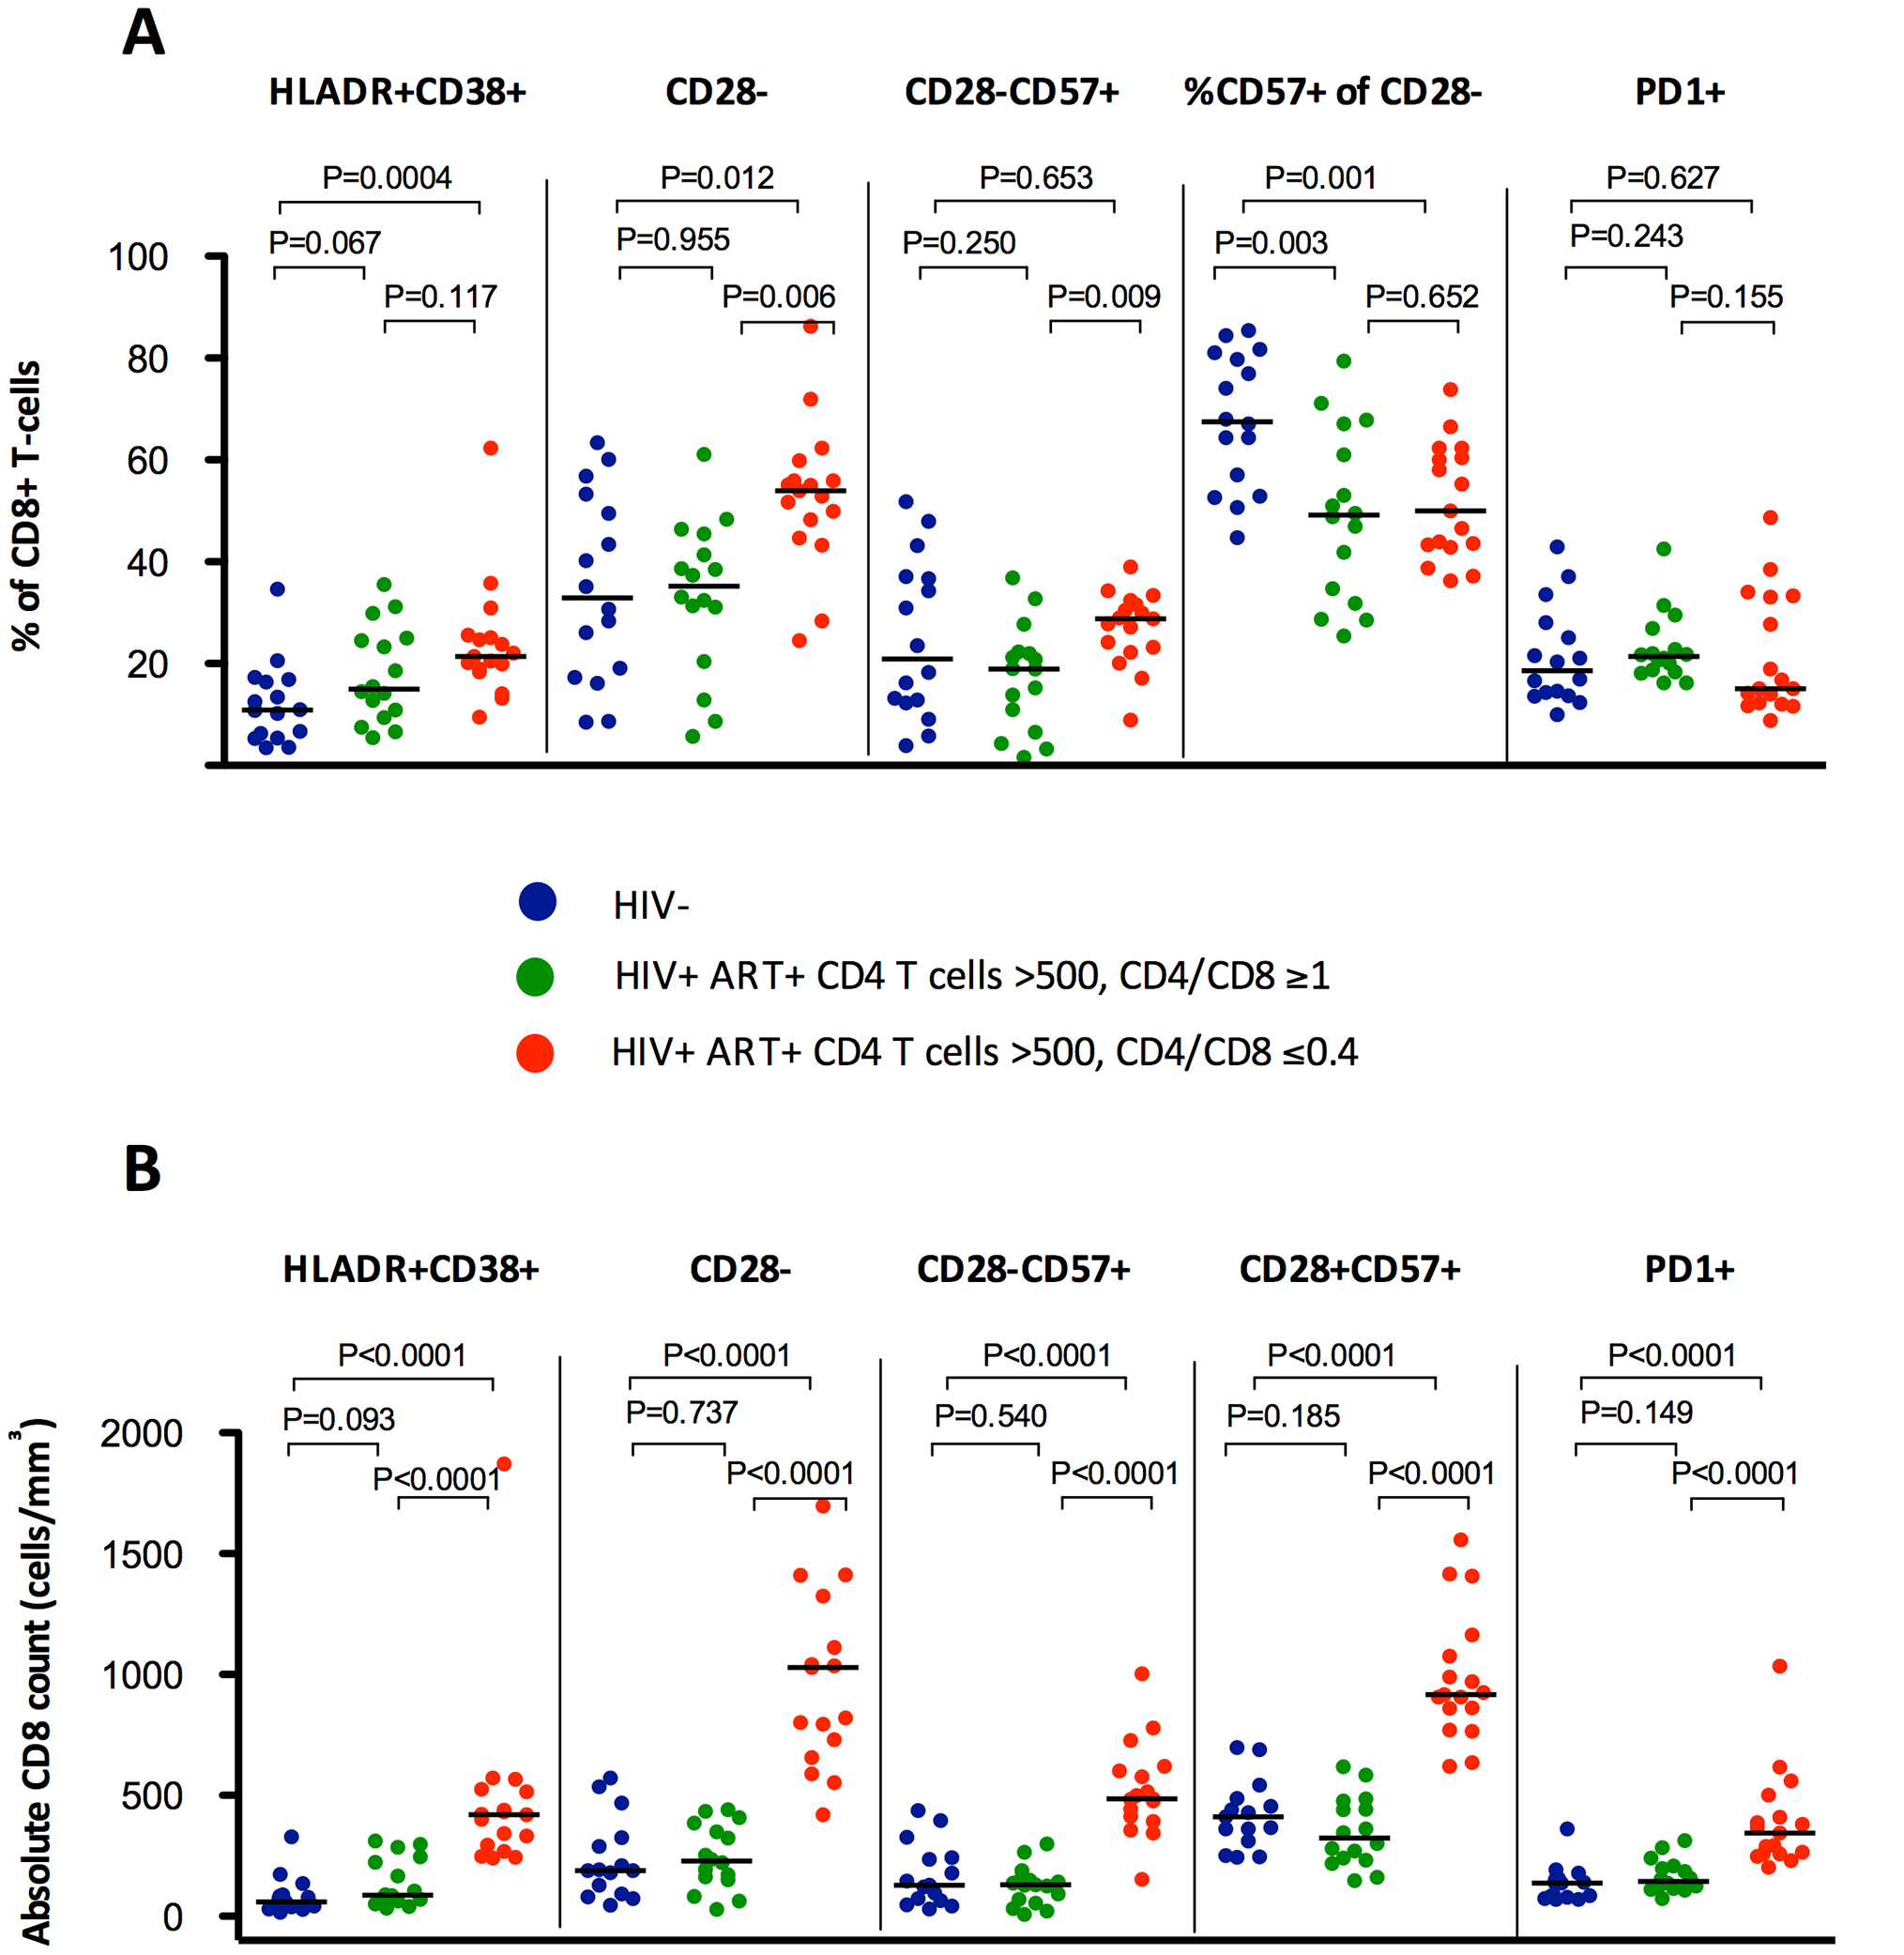 Percentages and absolute counts of CD8+ activation phenotypes among HIV-/CMV+ individuals and ART-suppressed HIV-infected patients with CD4 counts >500 cells/mm<sup>3</sup> stratified by a normal (4th quartile, ≥1, in green) or low (1st quartile, ≤0.4, in red) CD4/CD8 ratio.